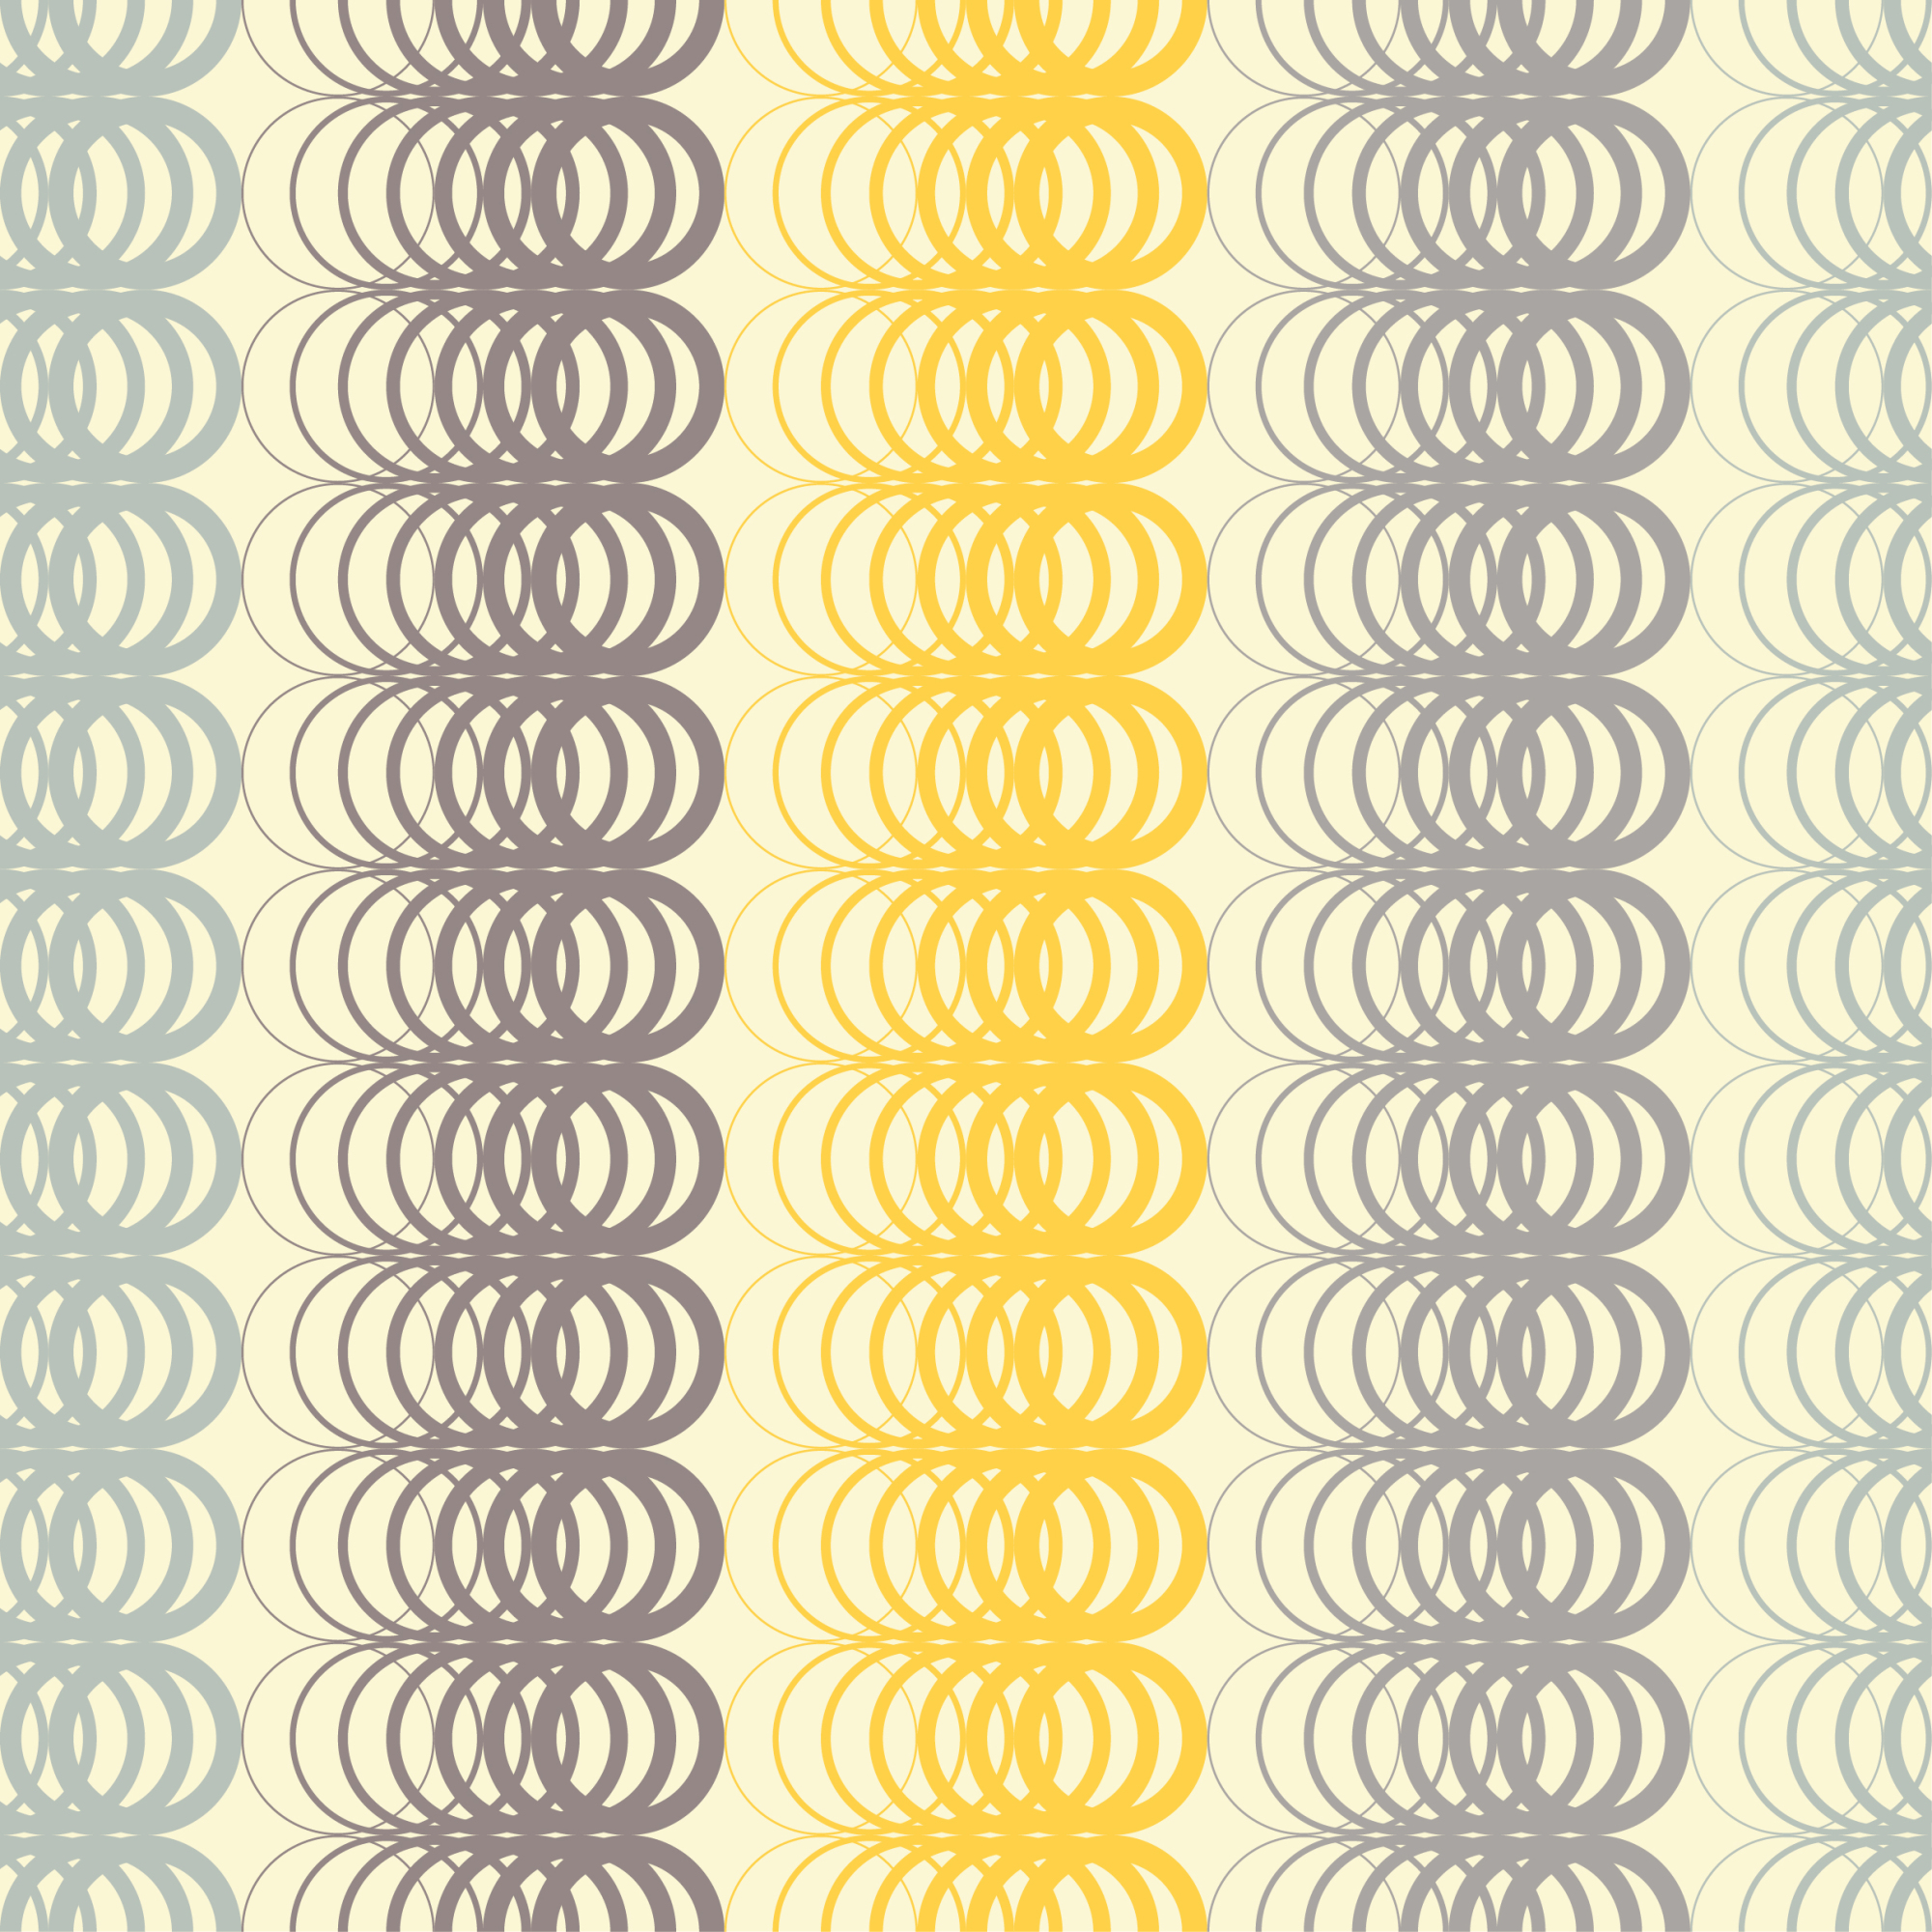 Set of 12 seamless vector backgrounds with abstract geometric pattern.  example image 6